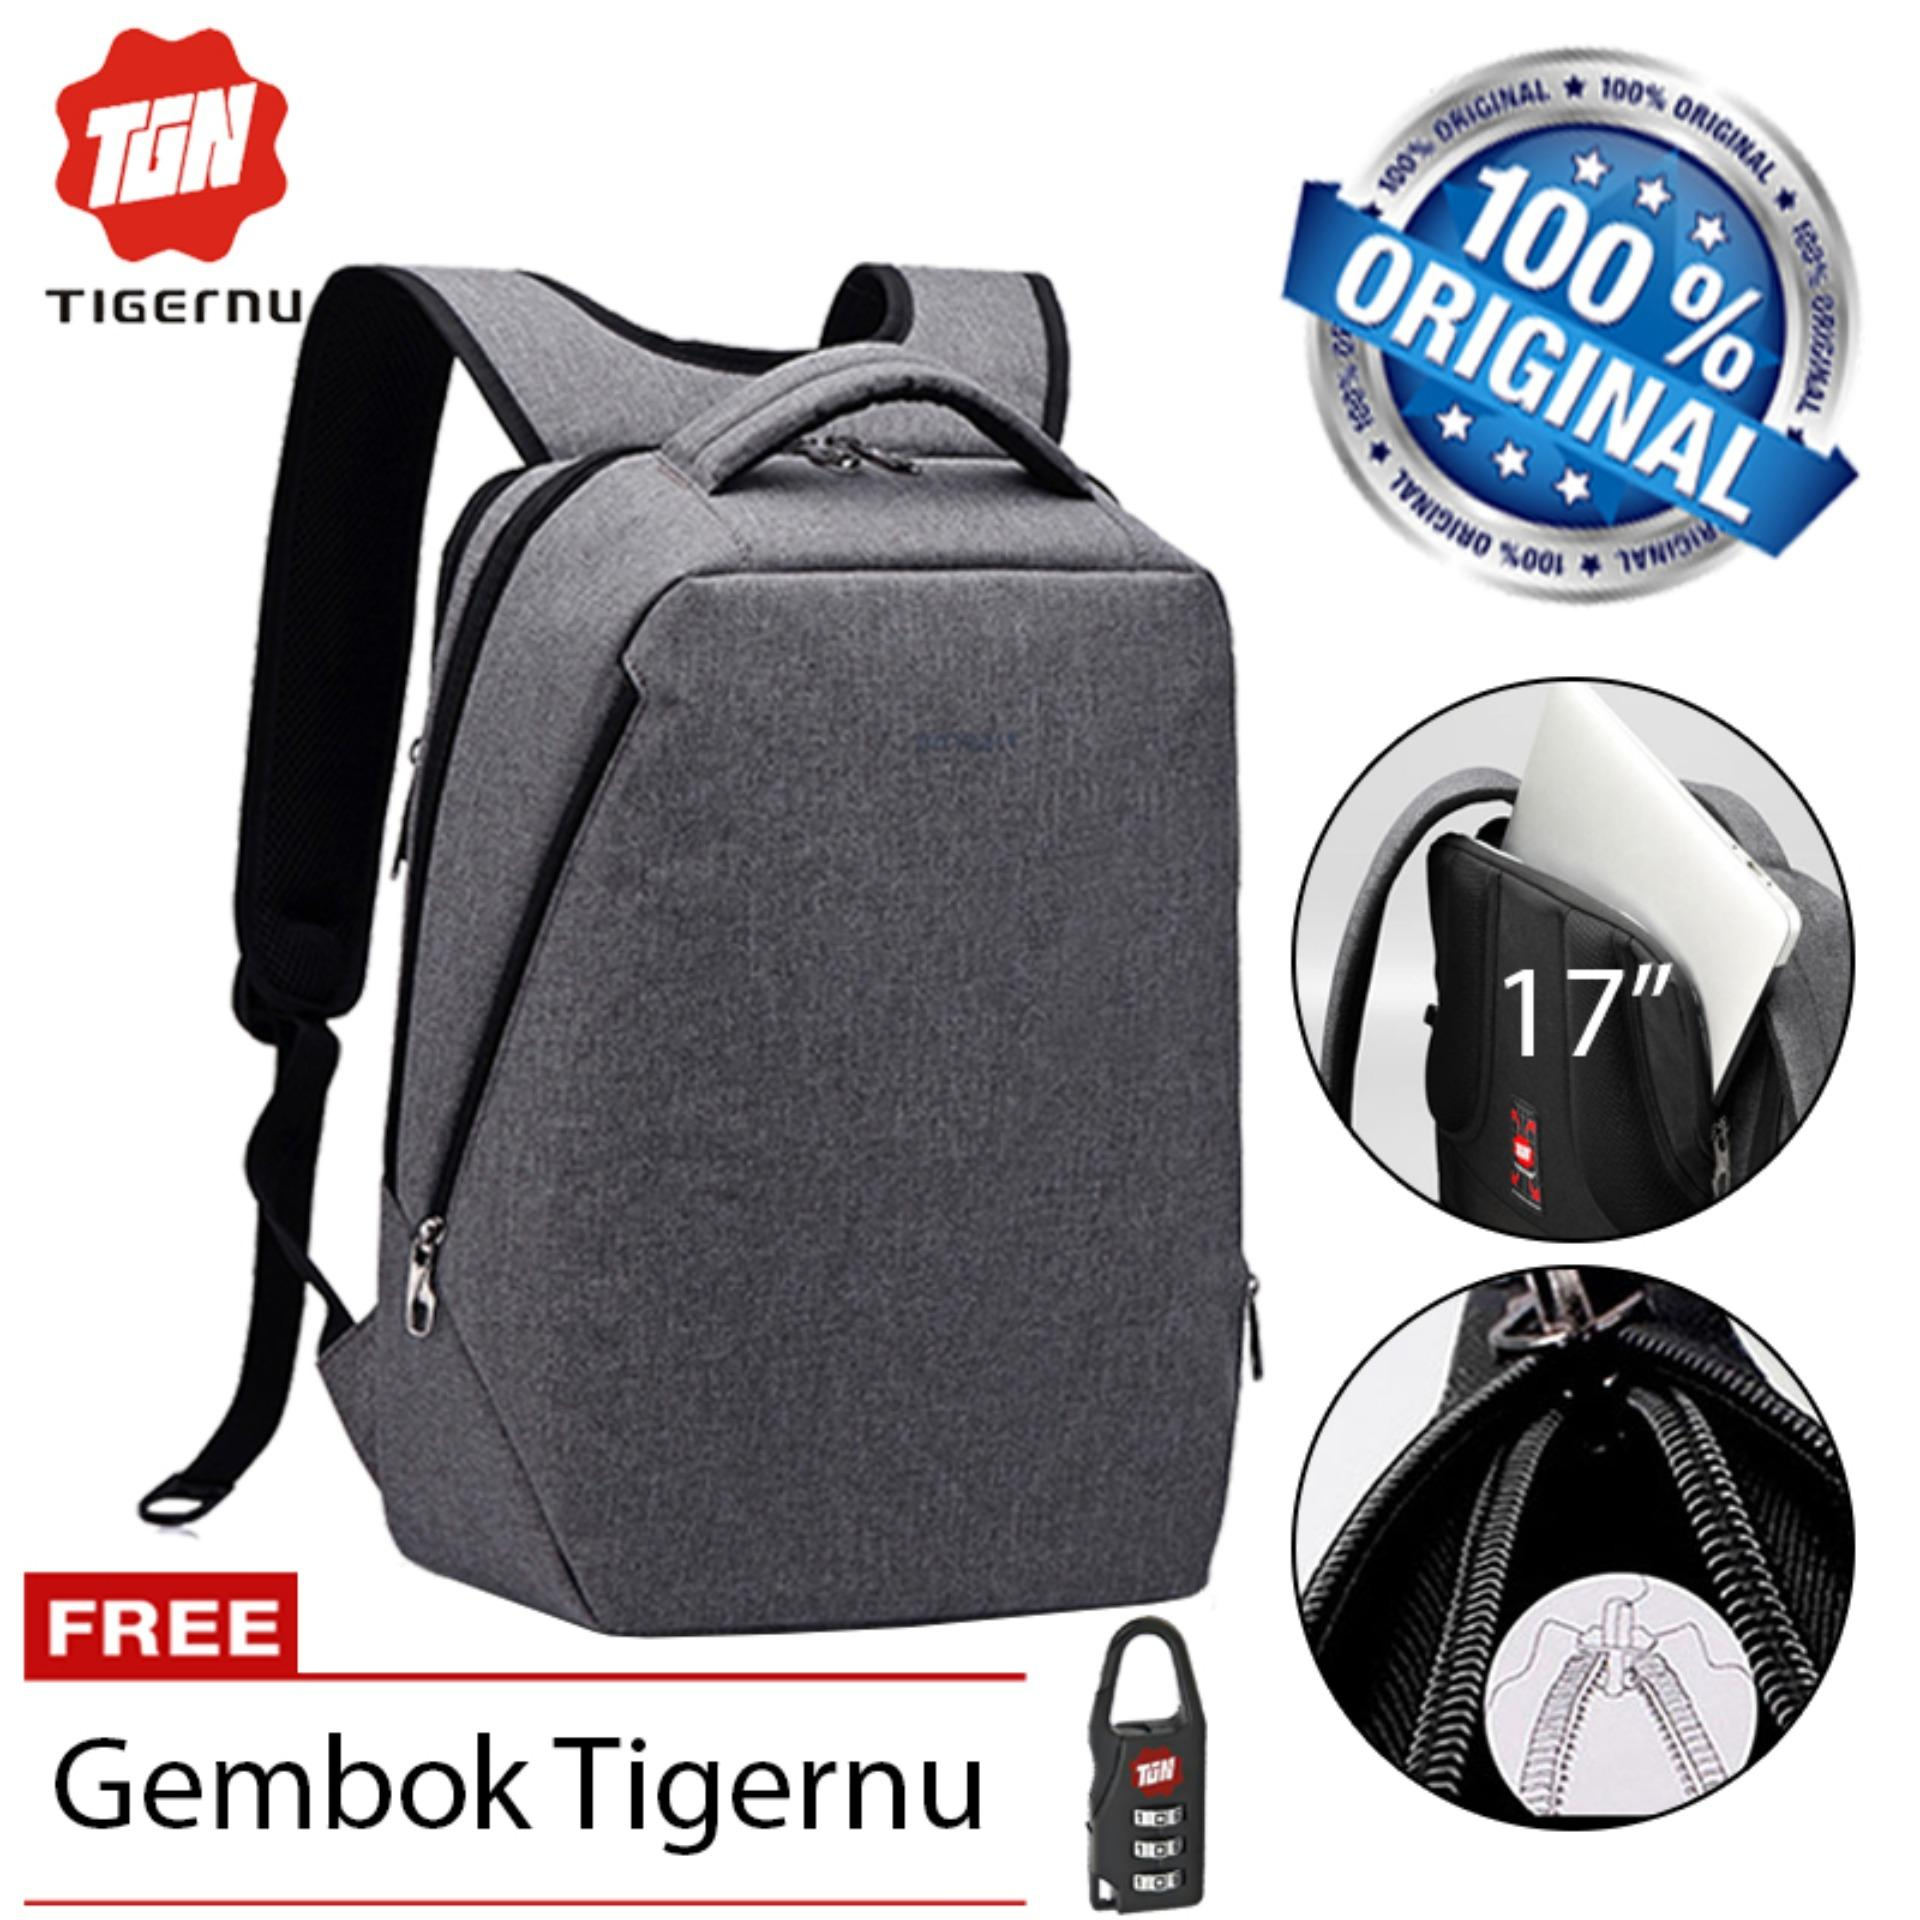 Tigernu Original Tas Ransel Anti Maling Laptop Gaming 17 Inch Anti Theft Waterproof Backpack